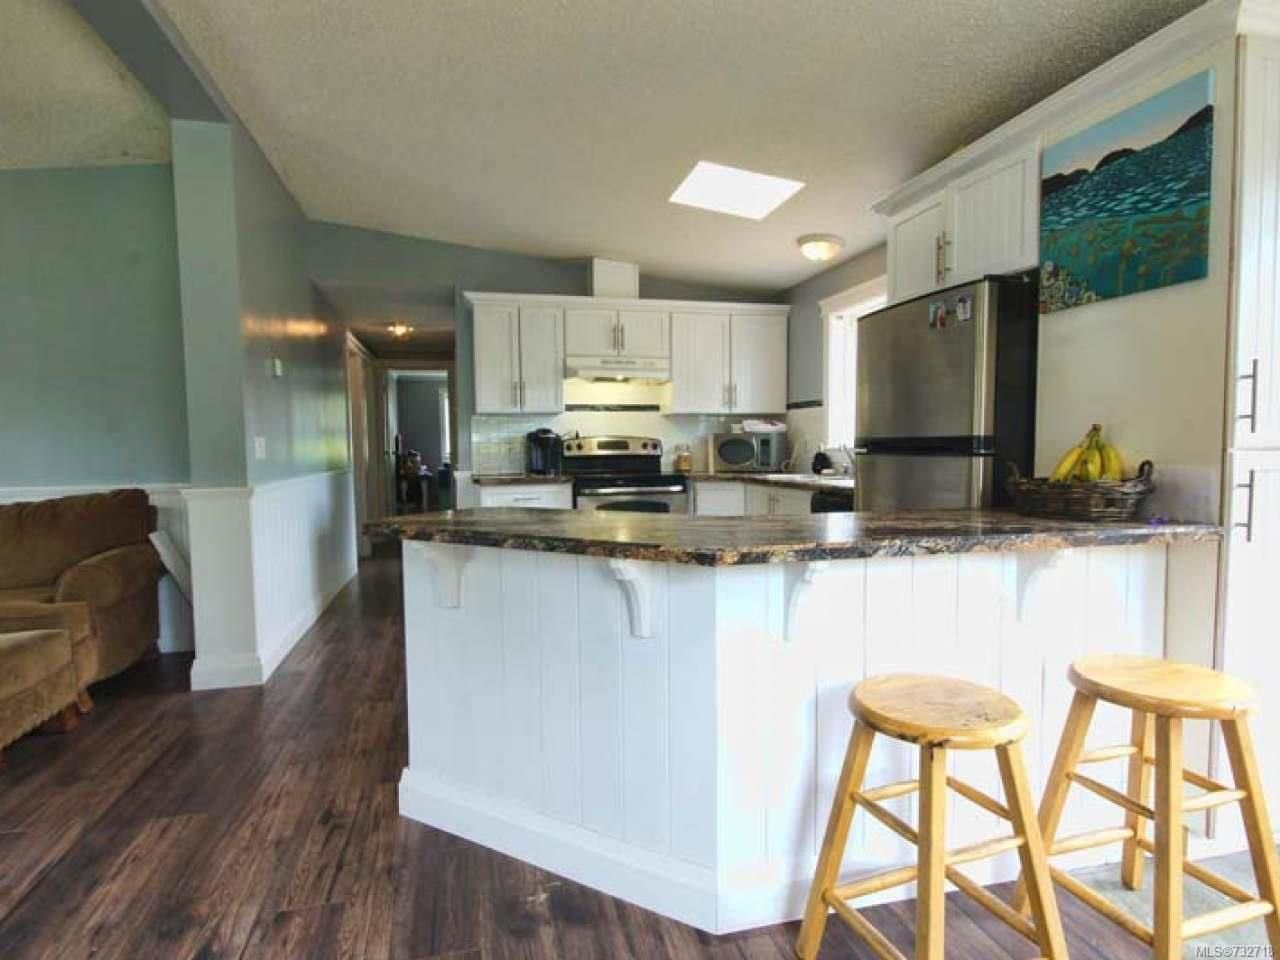 Photo 10: Photos: 921 POPLAR Way in ERRINGTON: PQ Errington/Coombs/Hilliers Manufactured Home for sale (Parksville/Qualicum)  : MLS®# 732718